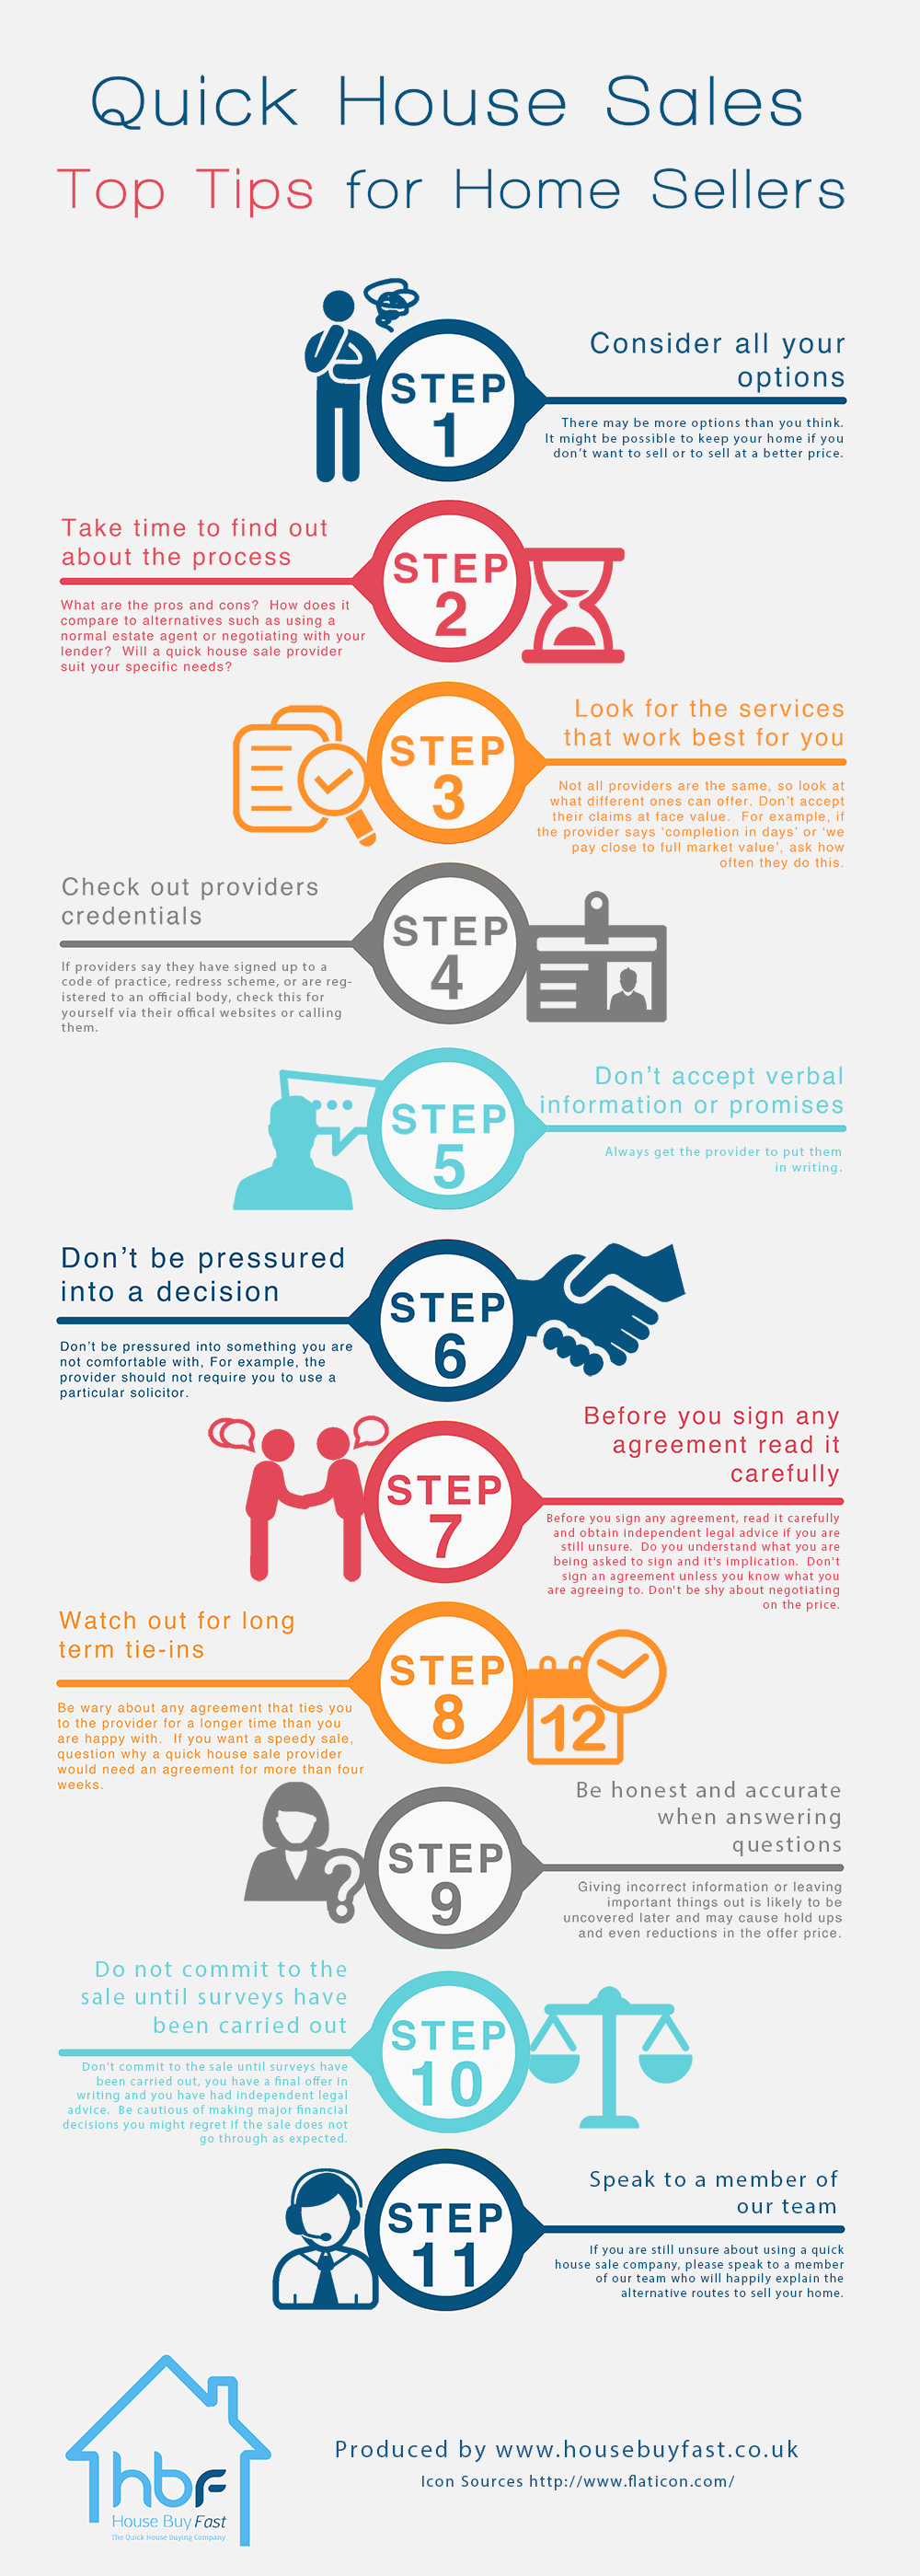 Top Tips For Home Sellers